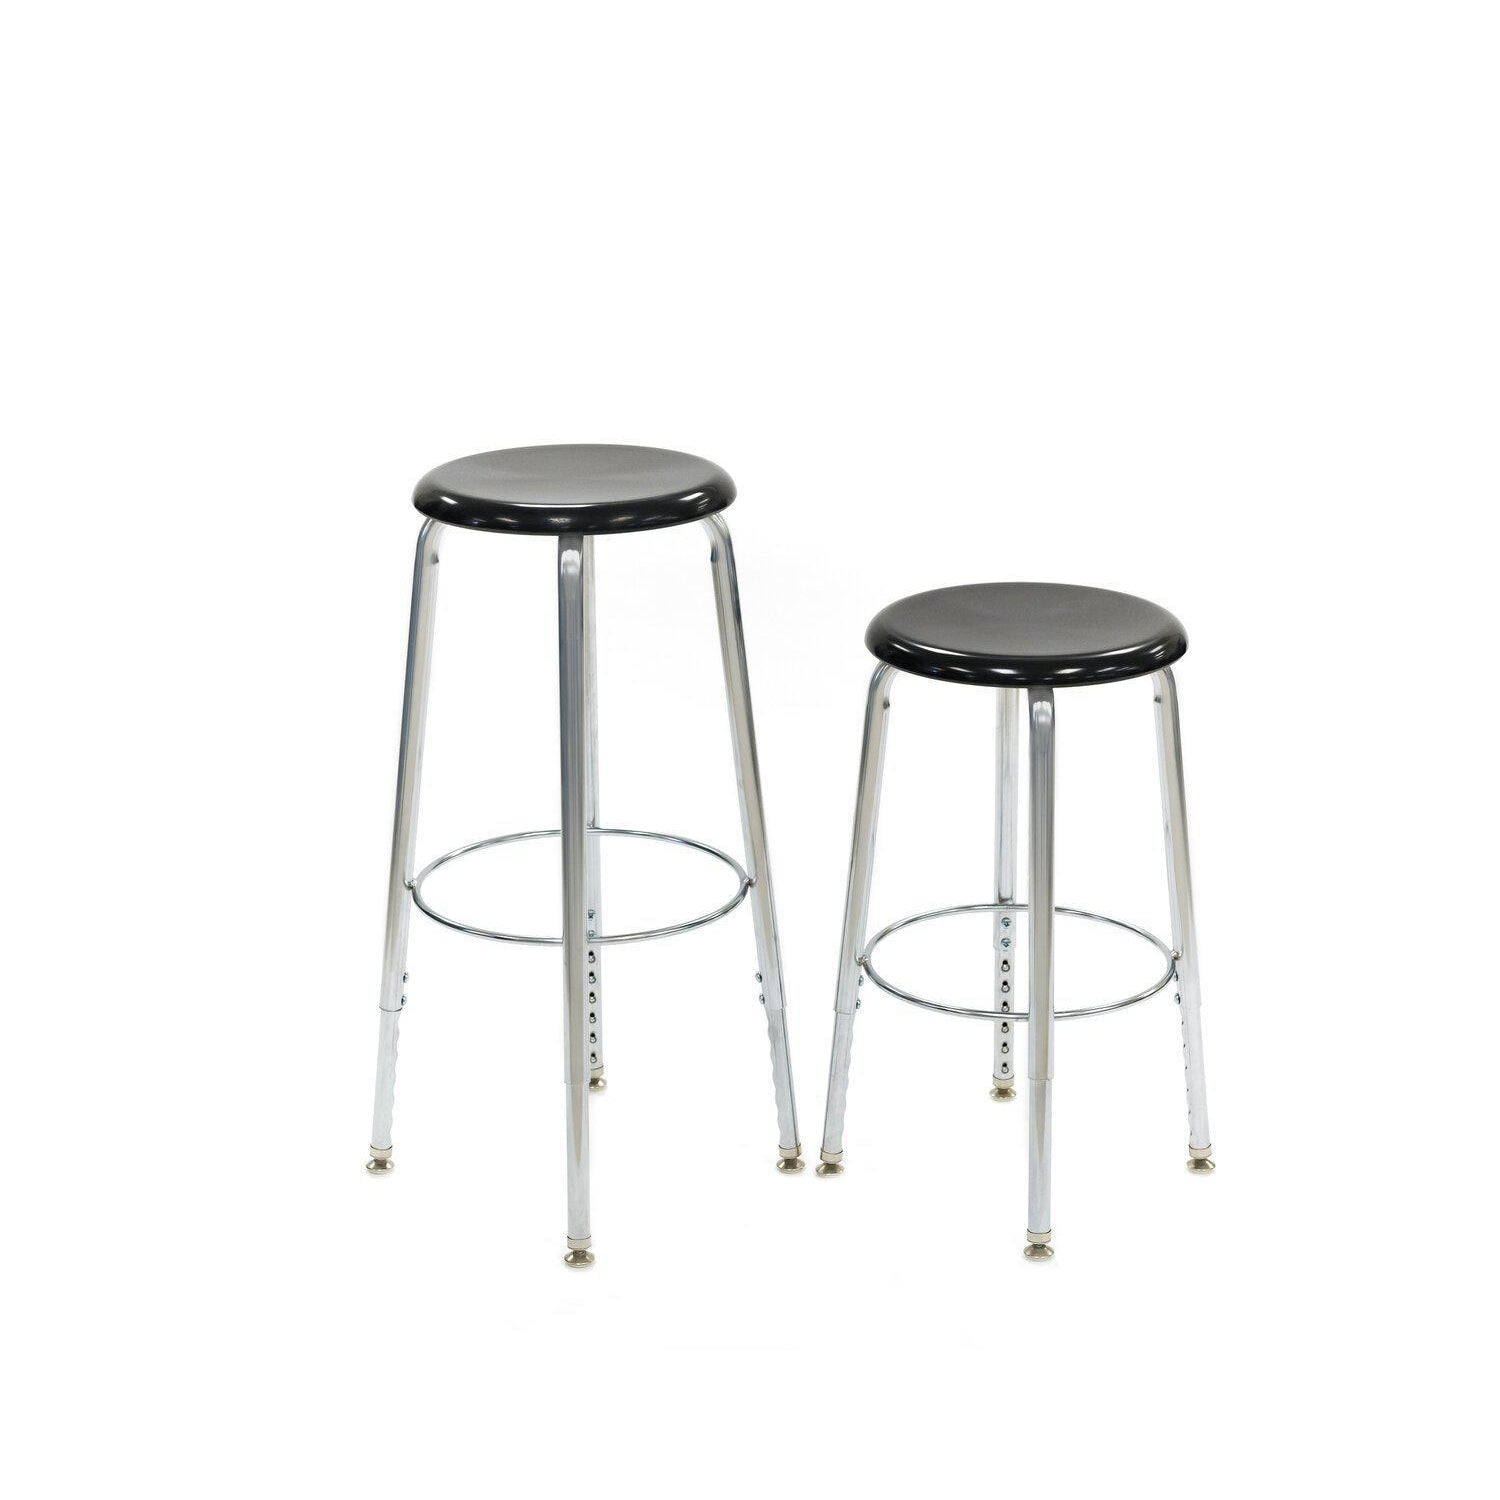 "Adjustable Height Stool with Solid Hard Plastic Seat, 18"" - 24"" H - QUICK SHIP"